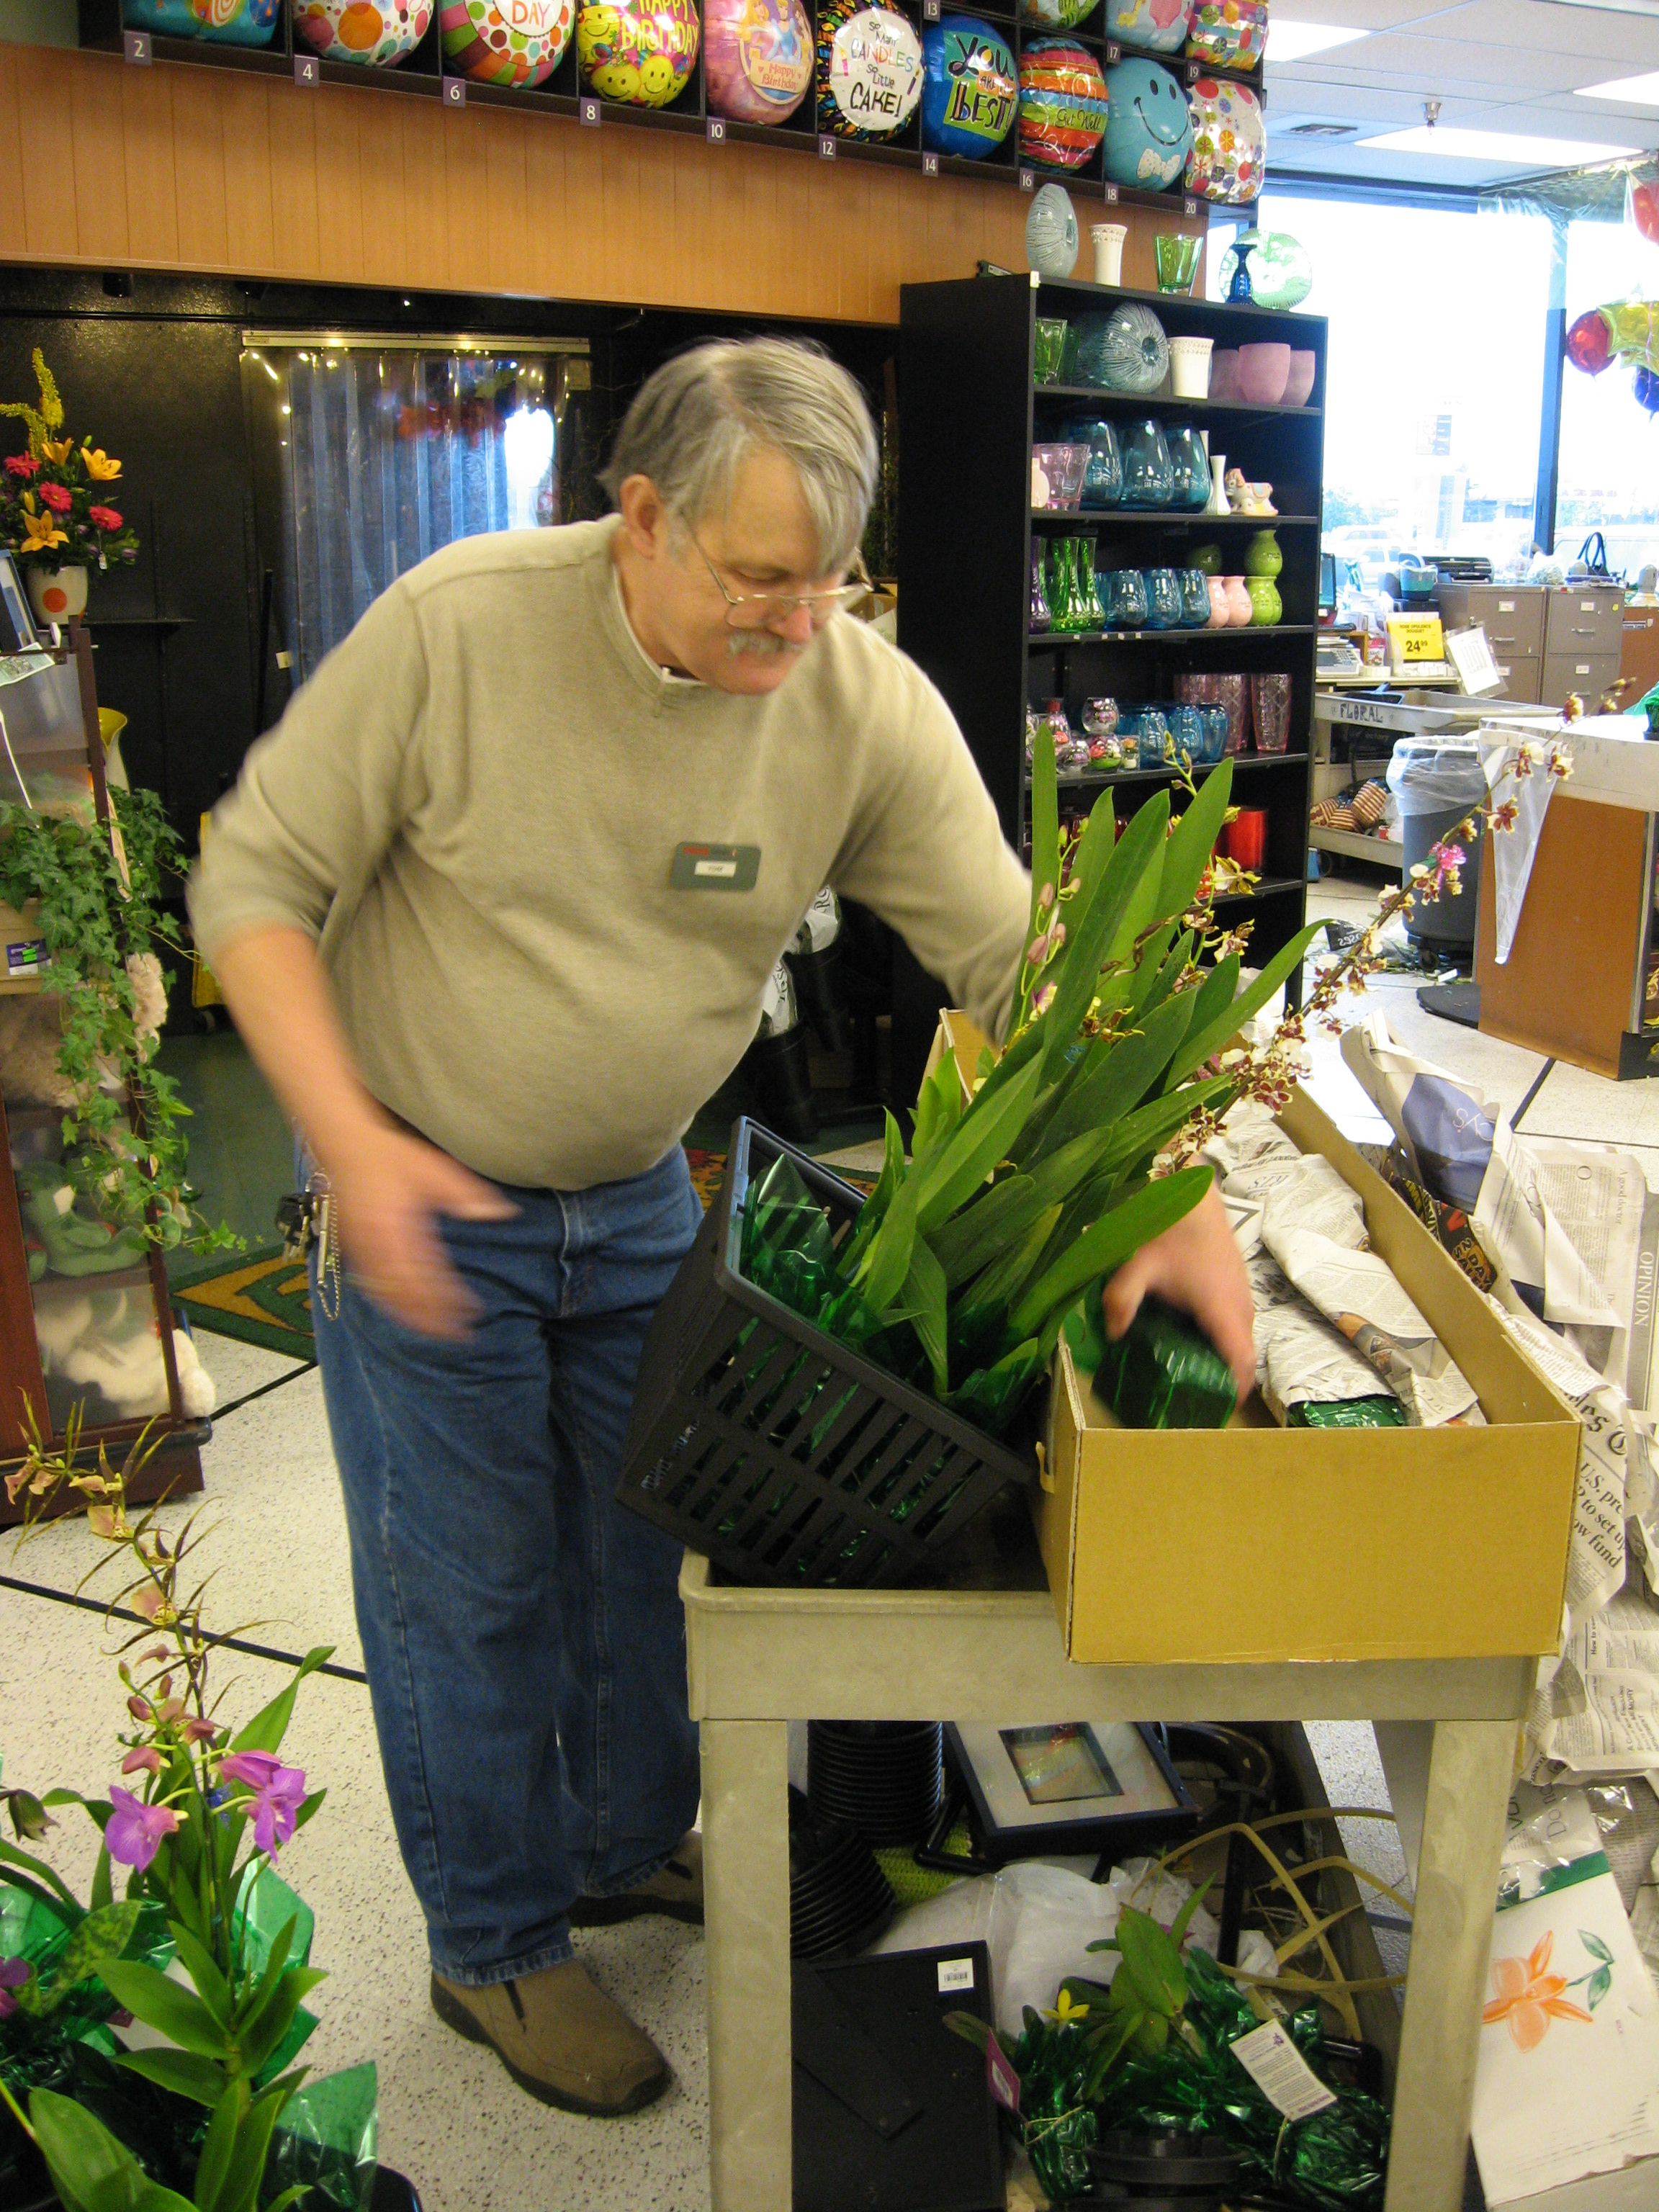 While in the local grocery store in Anchorage we found this guy putting out an amazing display of orchids. Had a wonderful chat with him about growing and care of orchids. That wasn't in our plan.